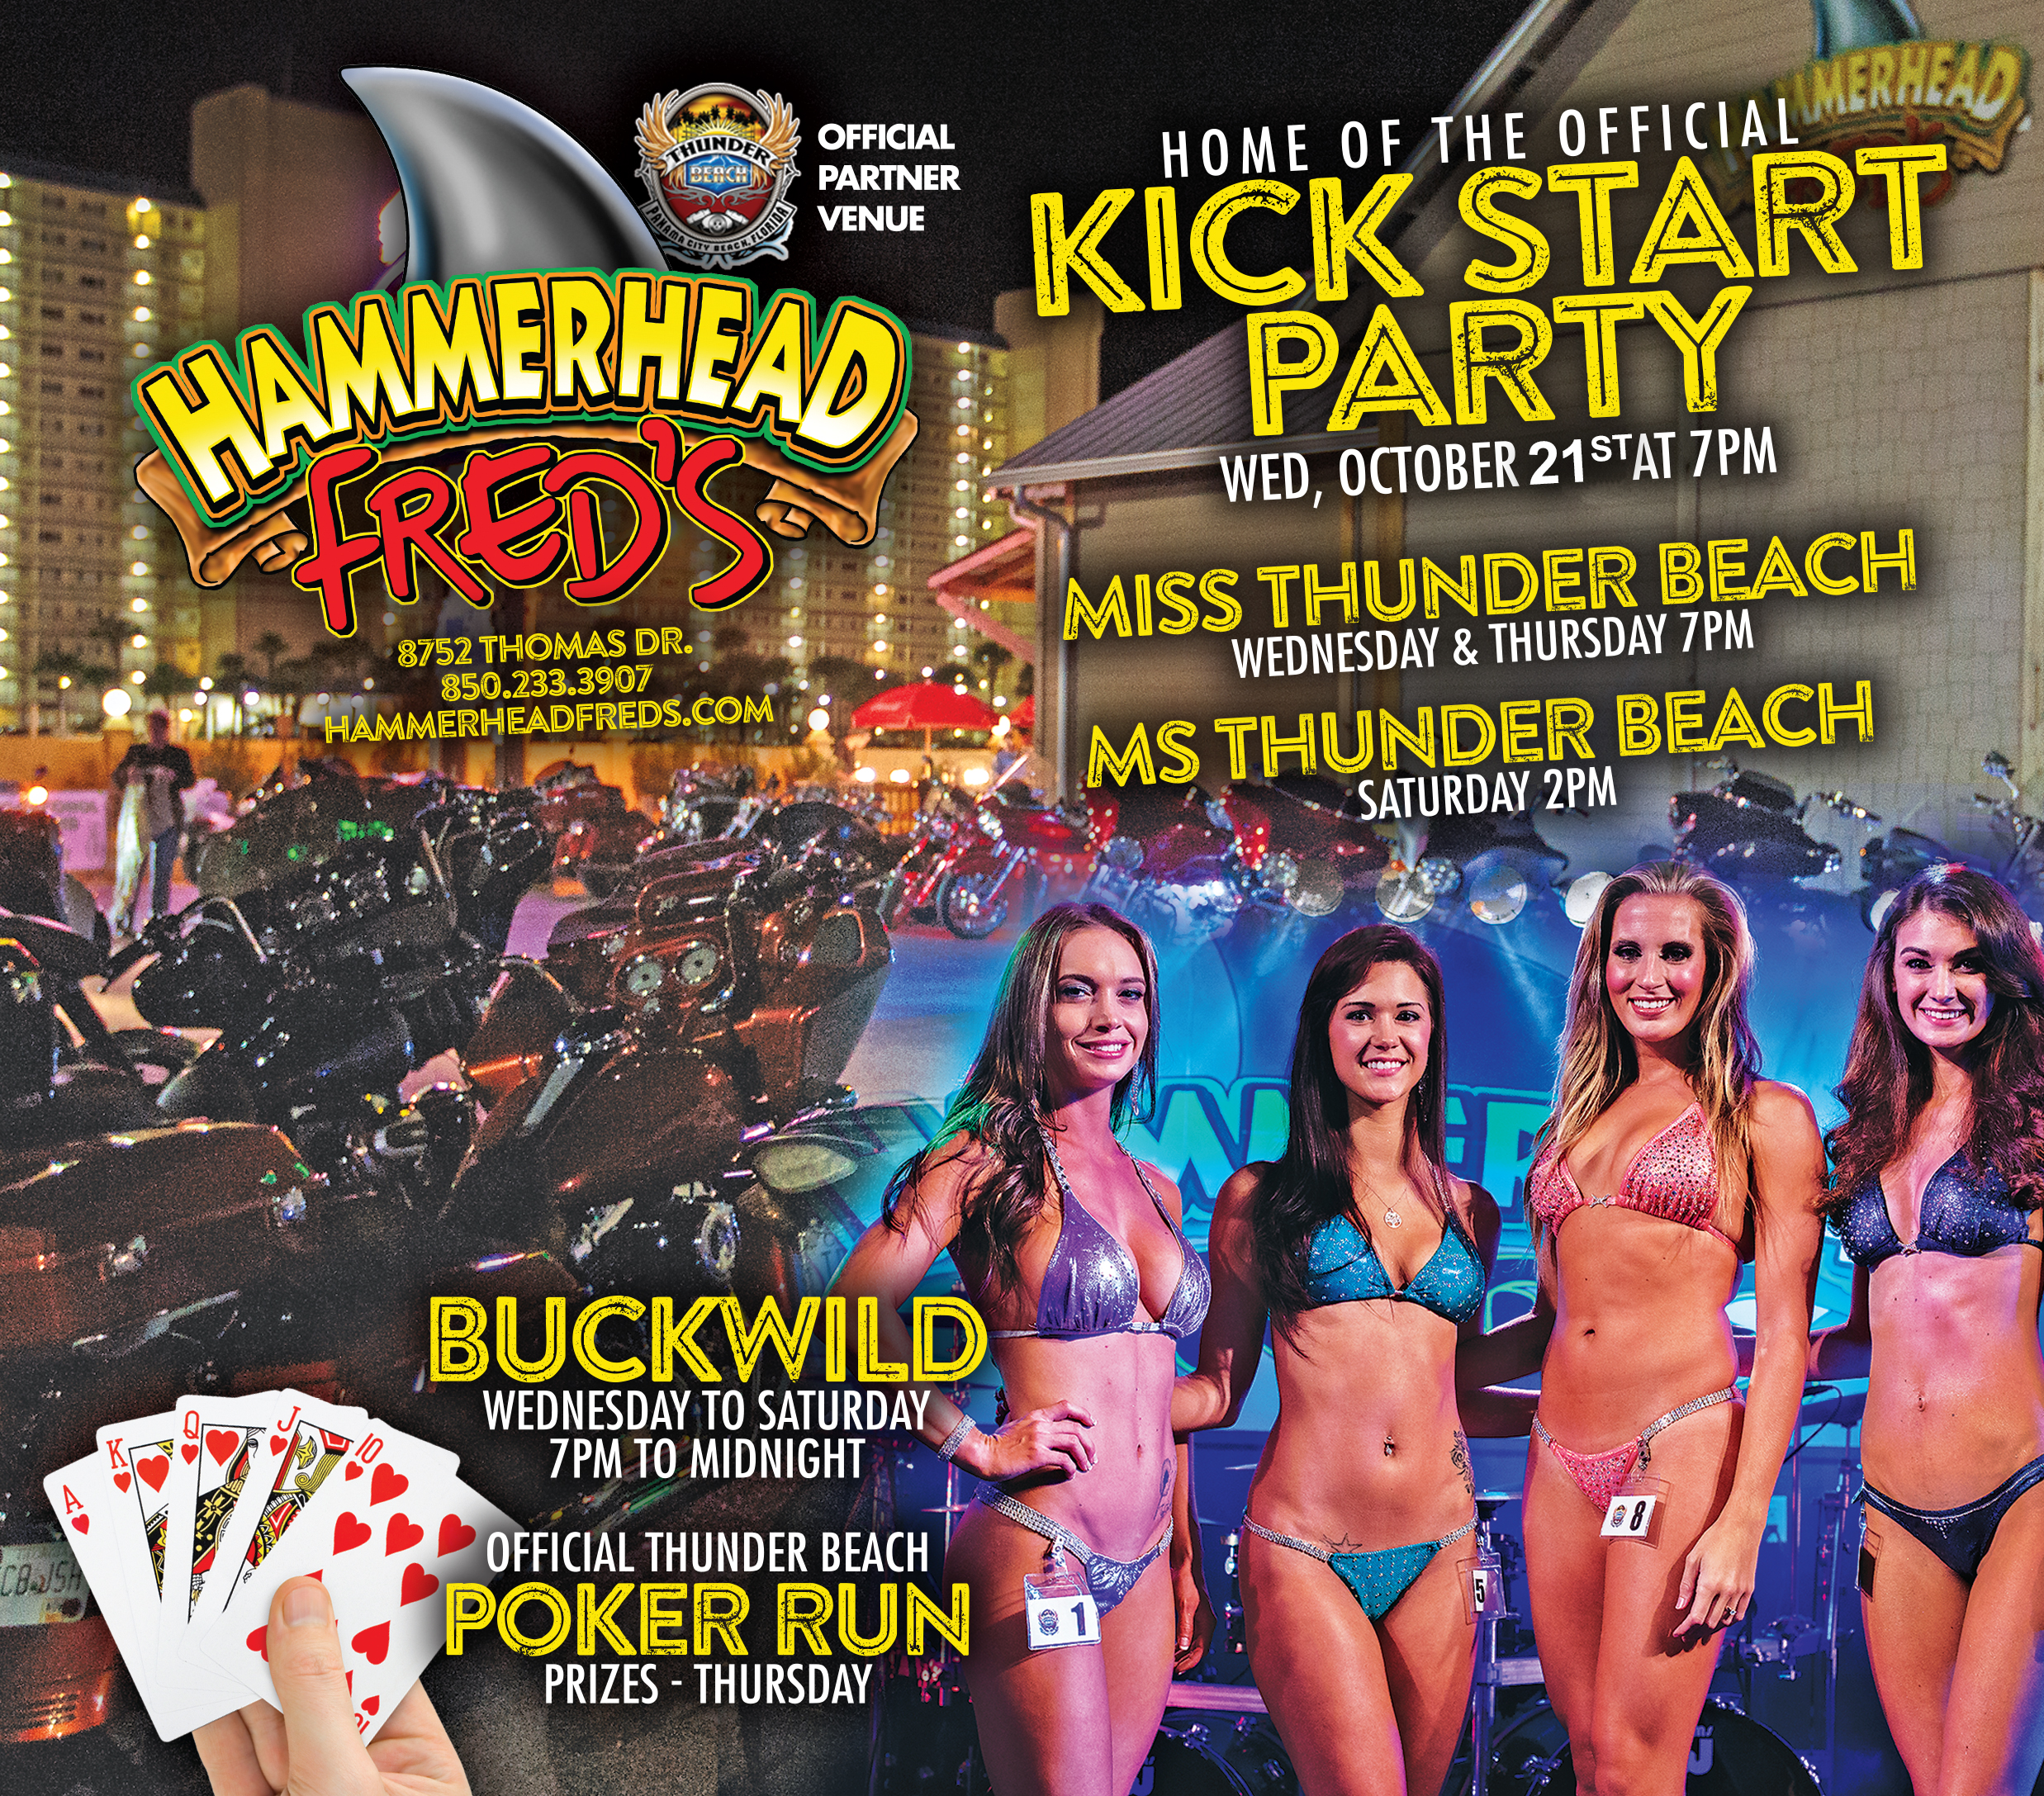 Hammerhead Freds Kick-Start Party